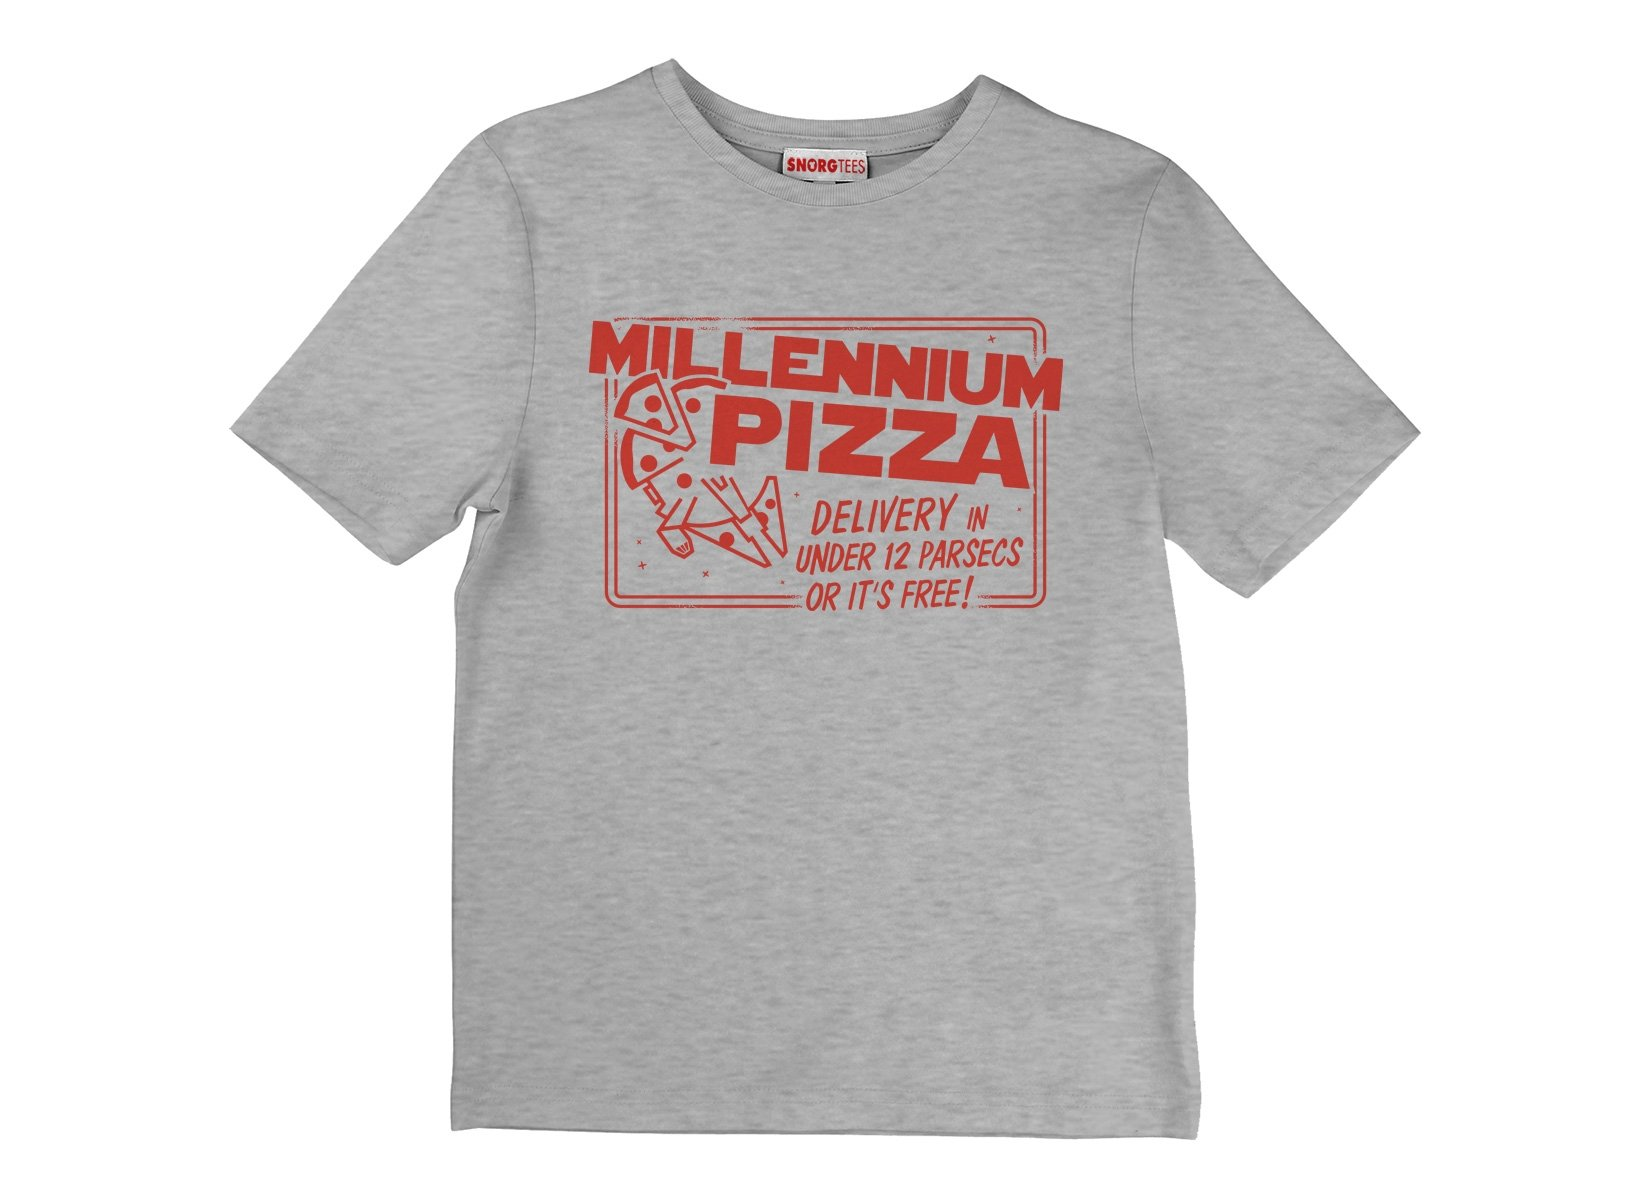 Millennium Pizza on Kids T-Shirt